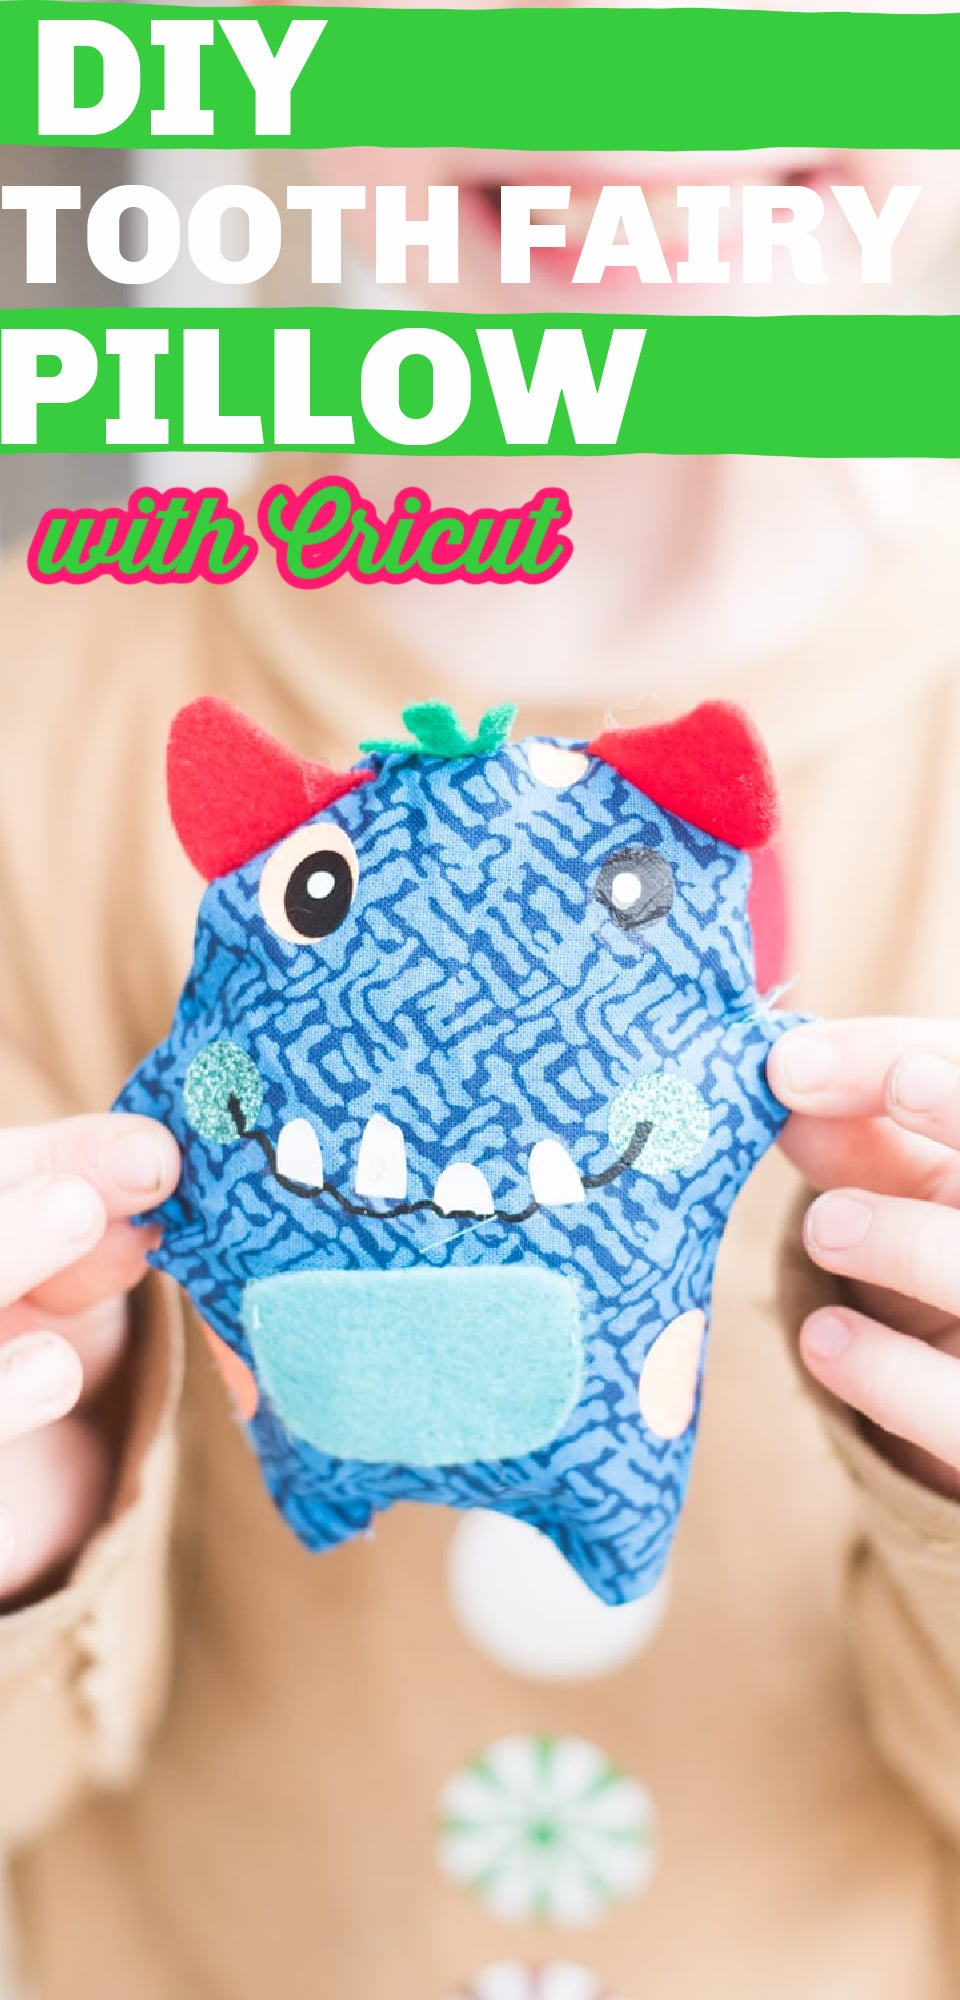 DIY Tooth Fairy Pillow / Tooth Fairy Pillow Tutorial / Sewing With Kids via @clarkscondensed